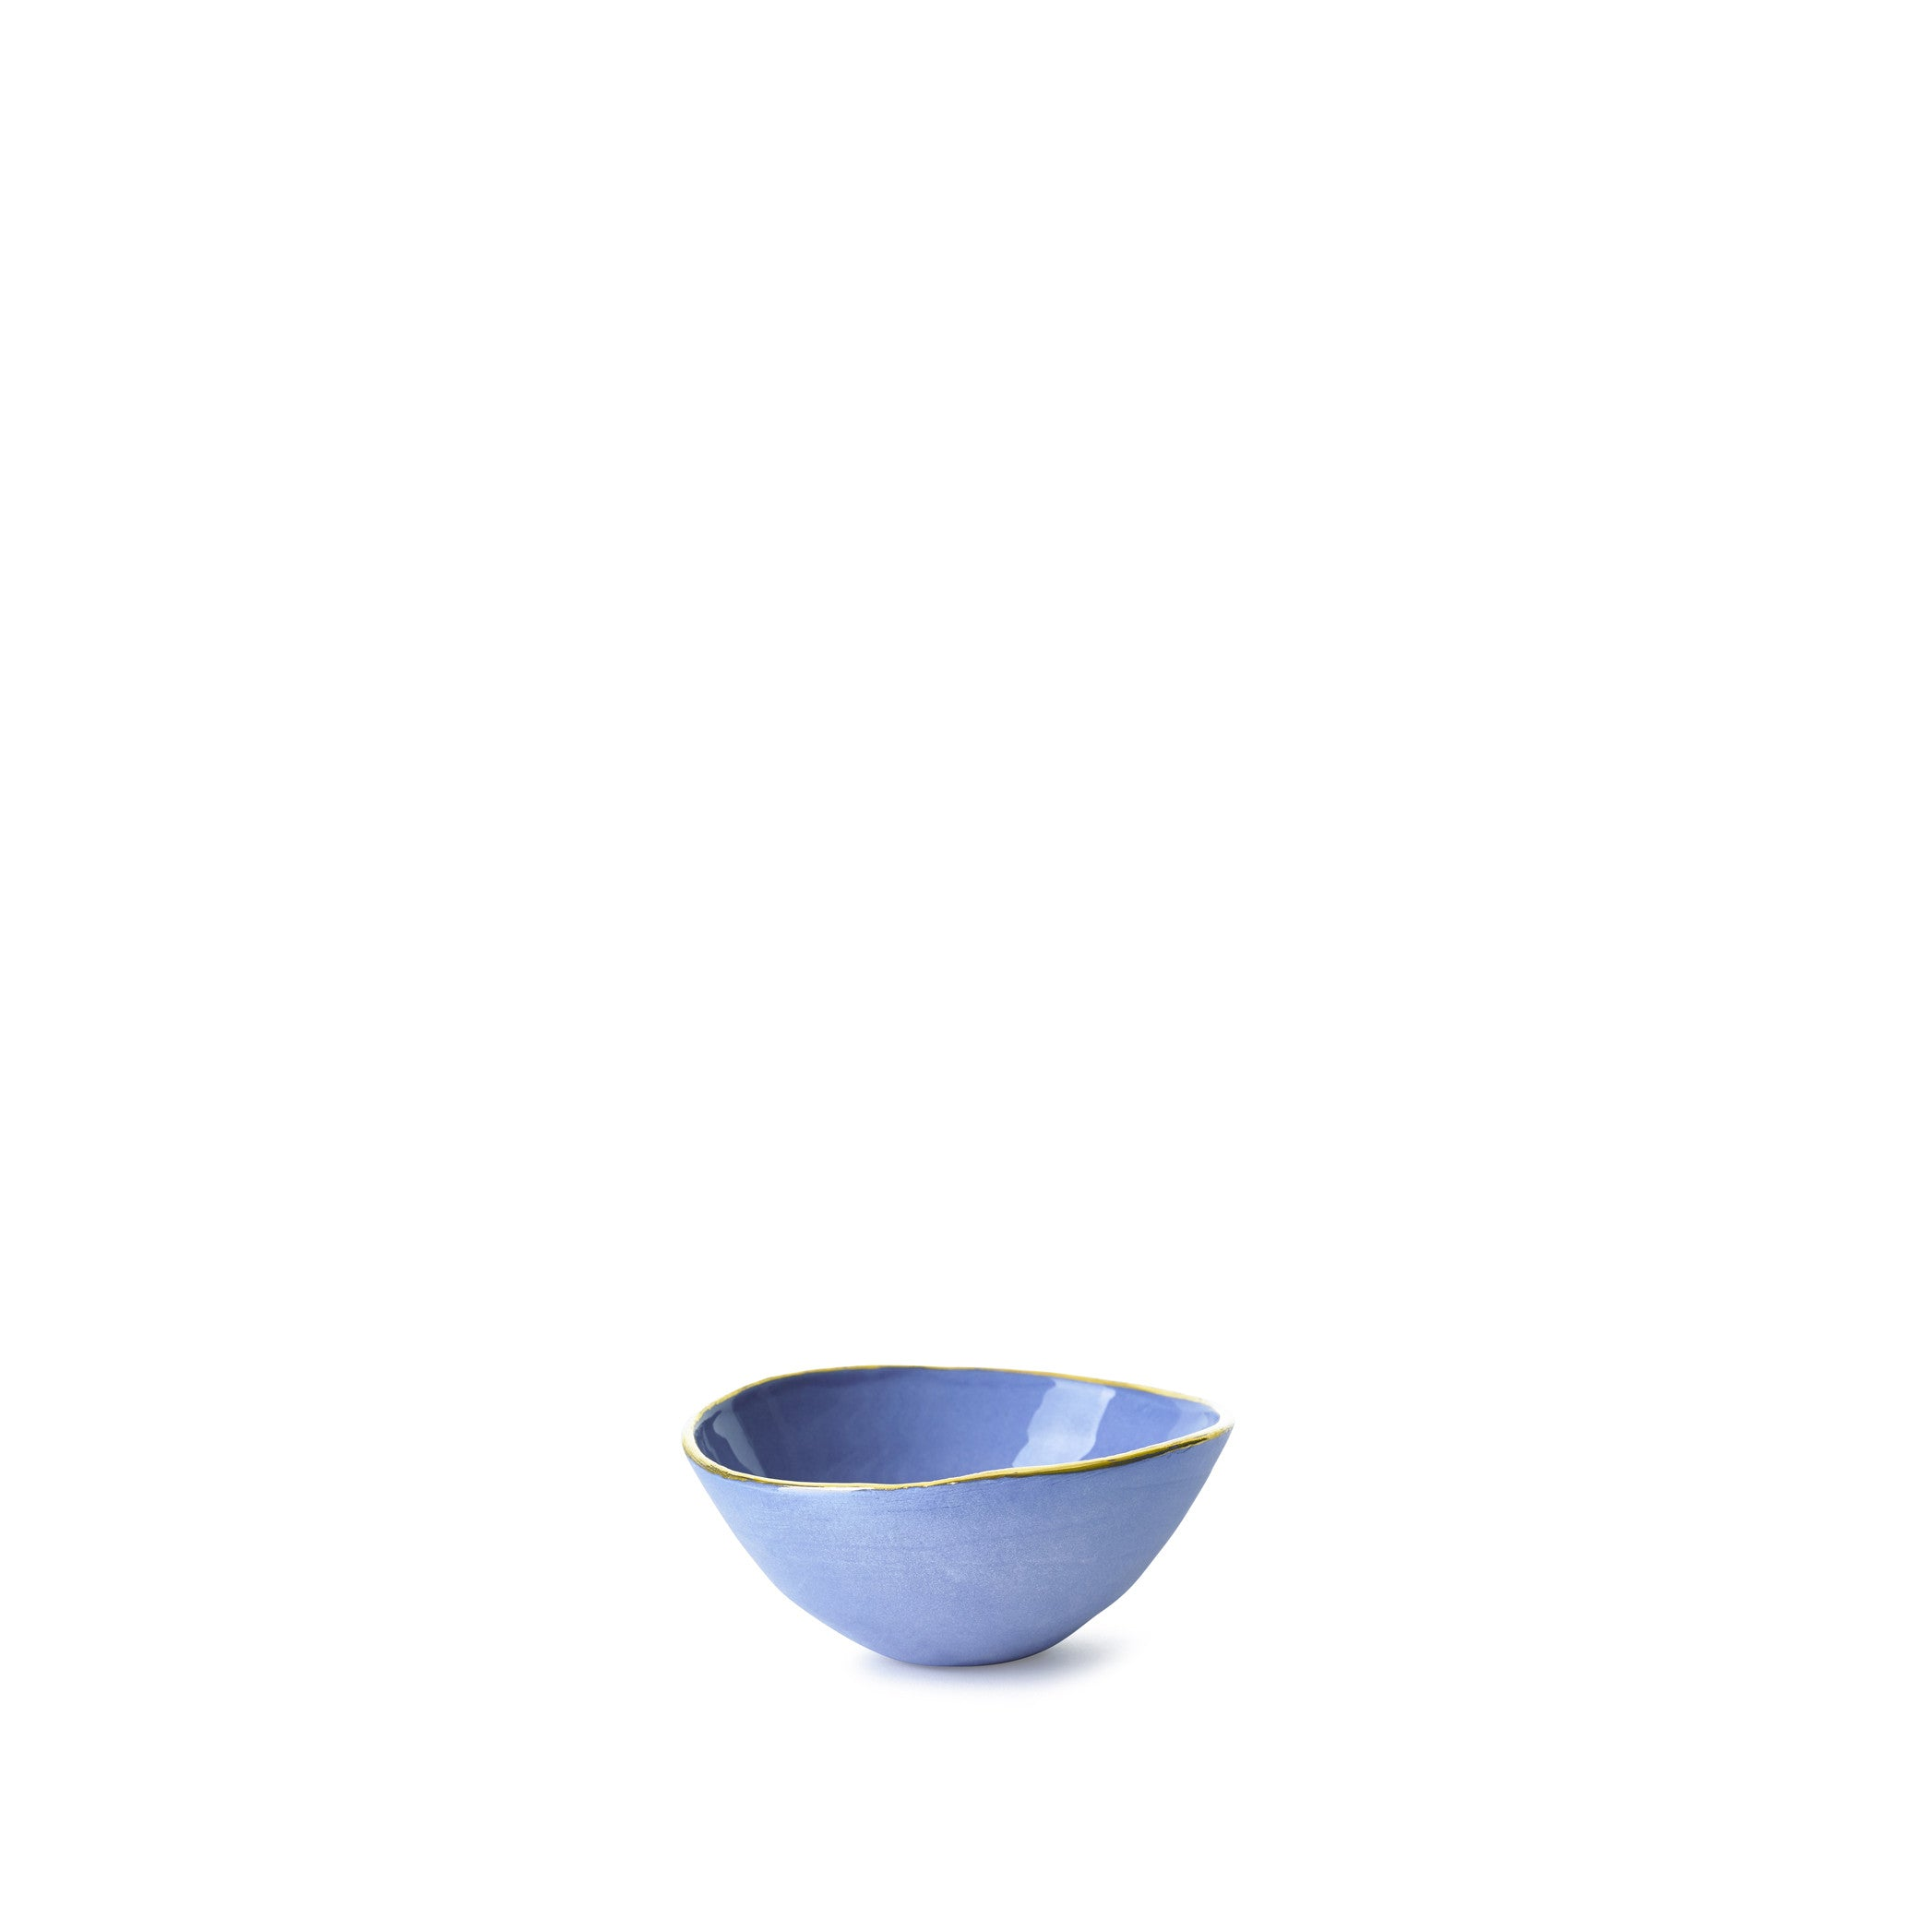 Full Painted Blue Ceramic Bowl with Gold Rim, 6cm